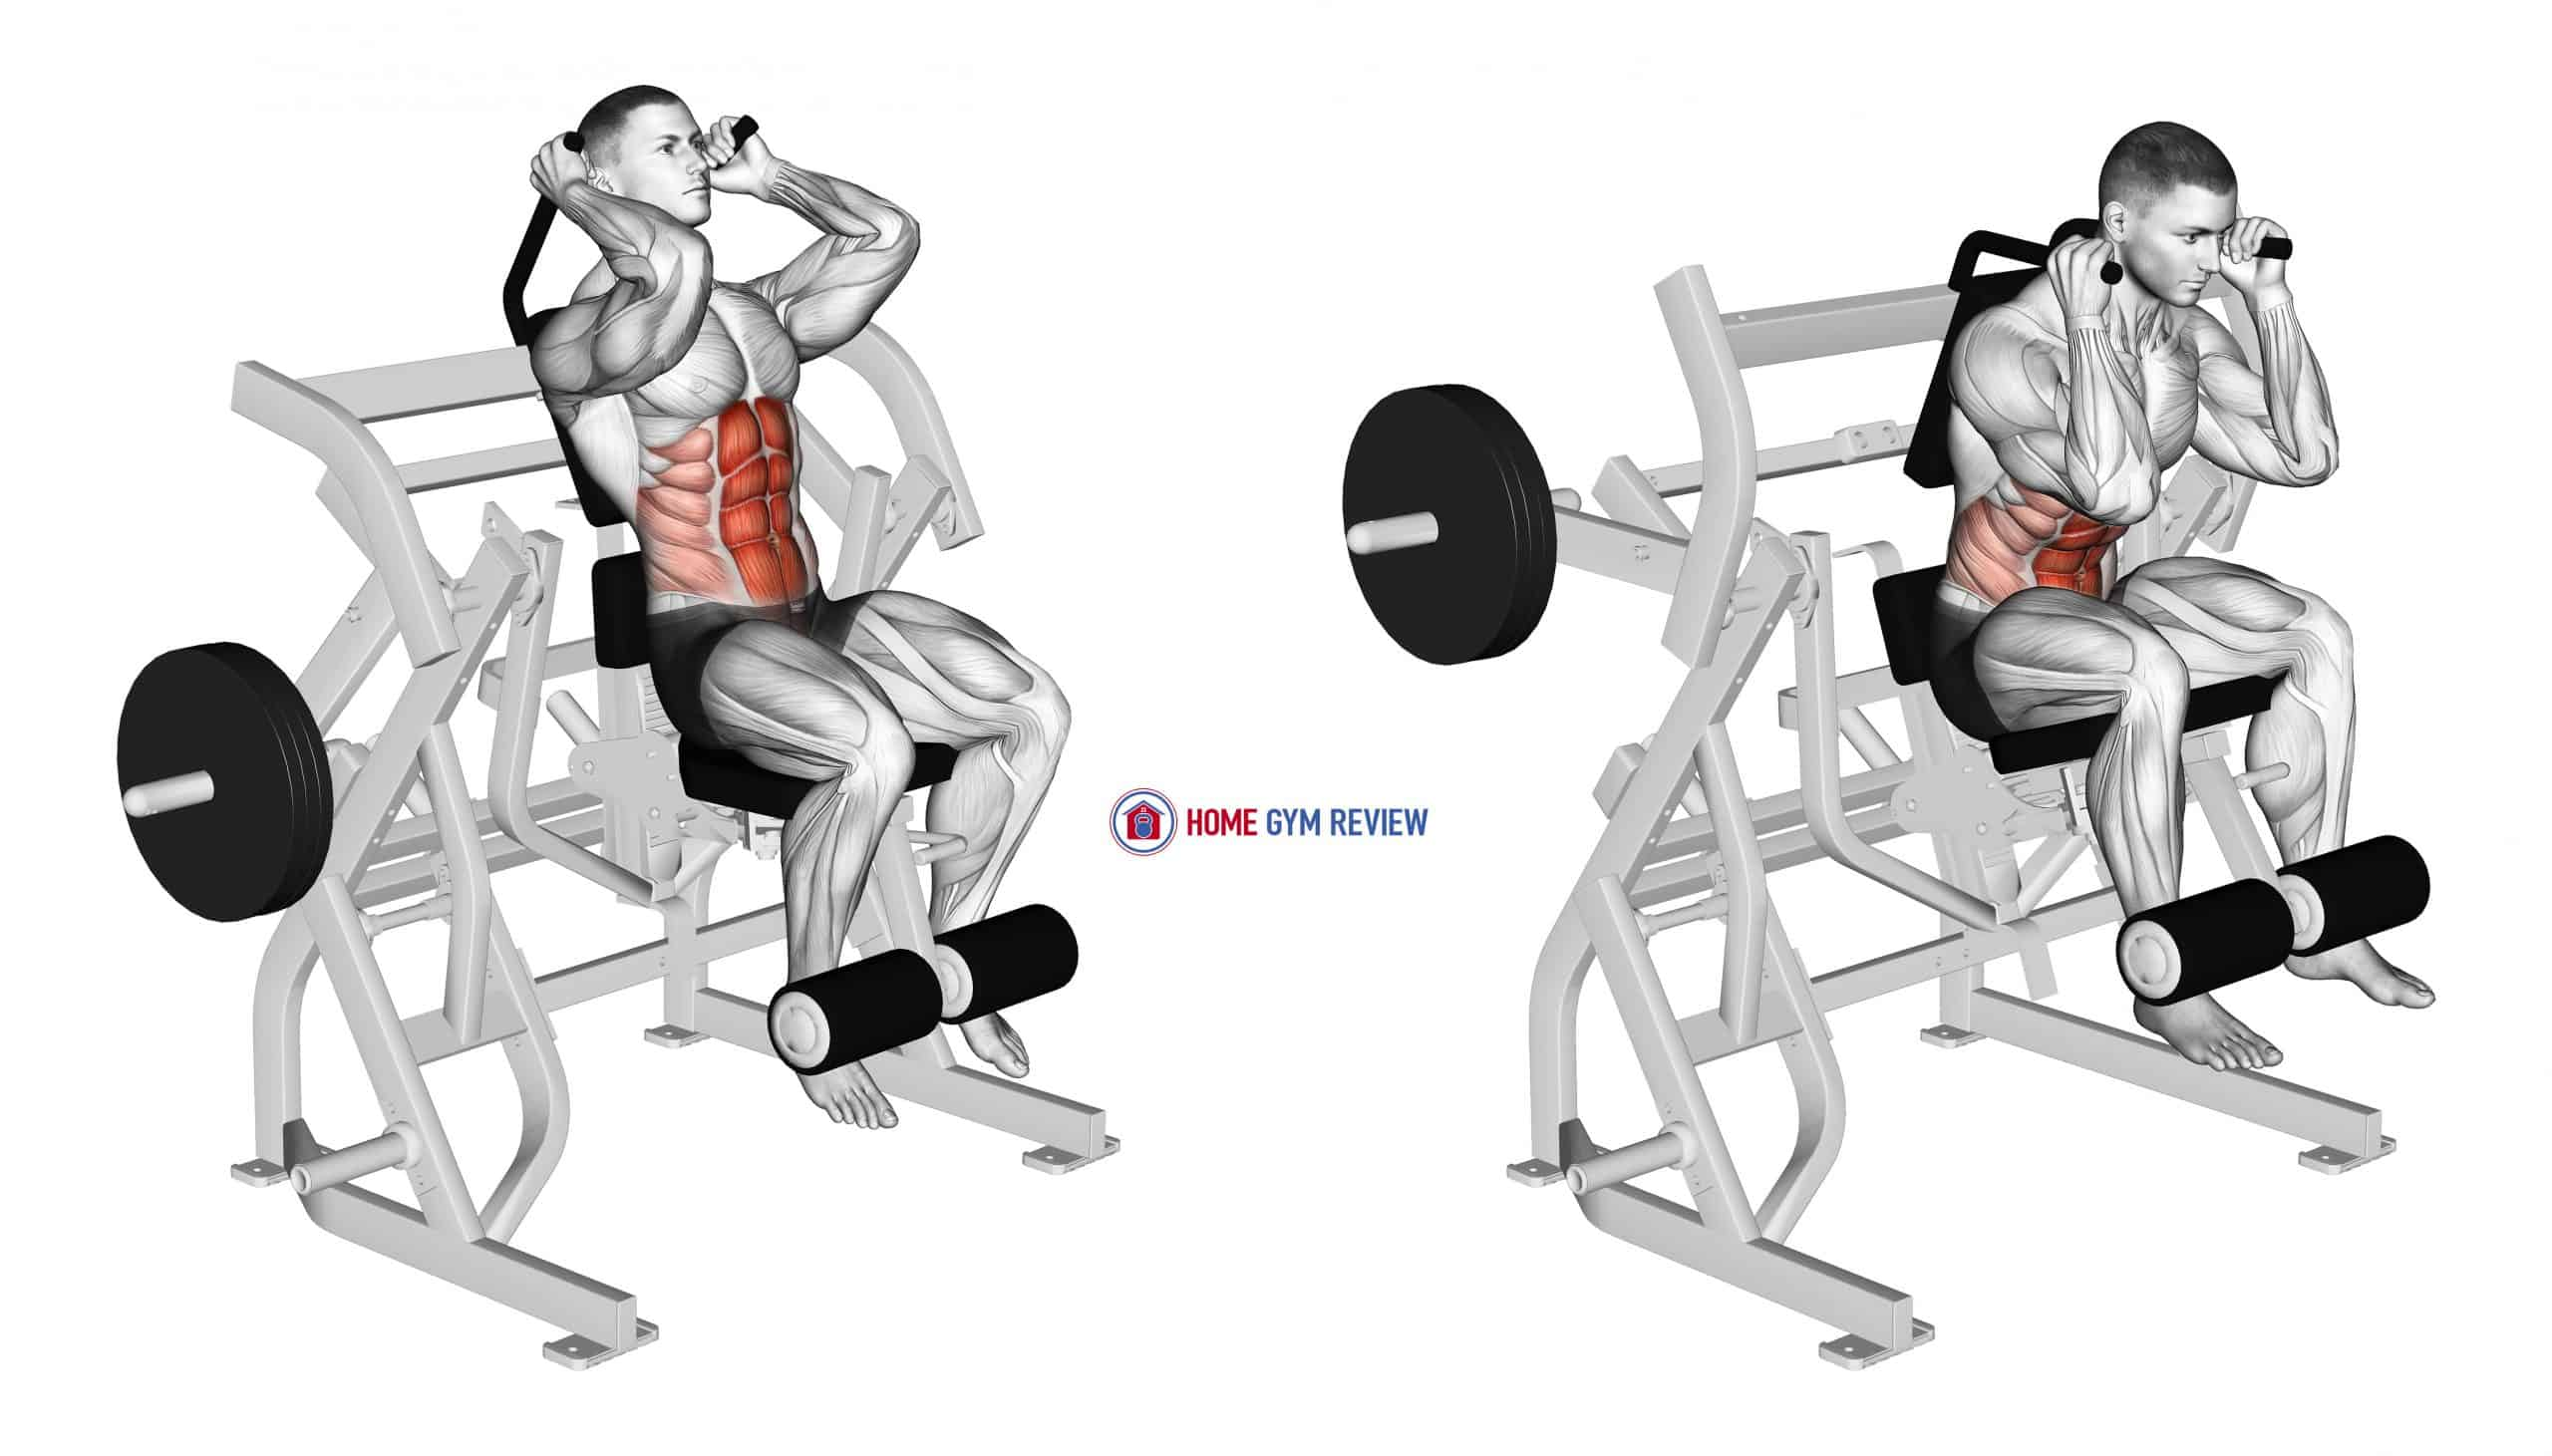 Lever Seated Leg Raise Crunch (plate loaded)